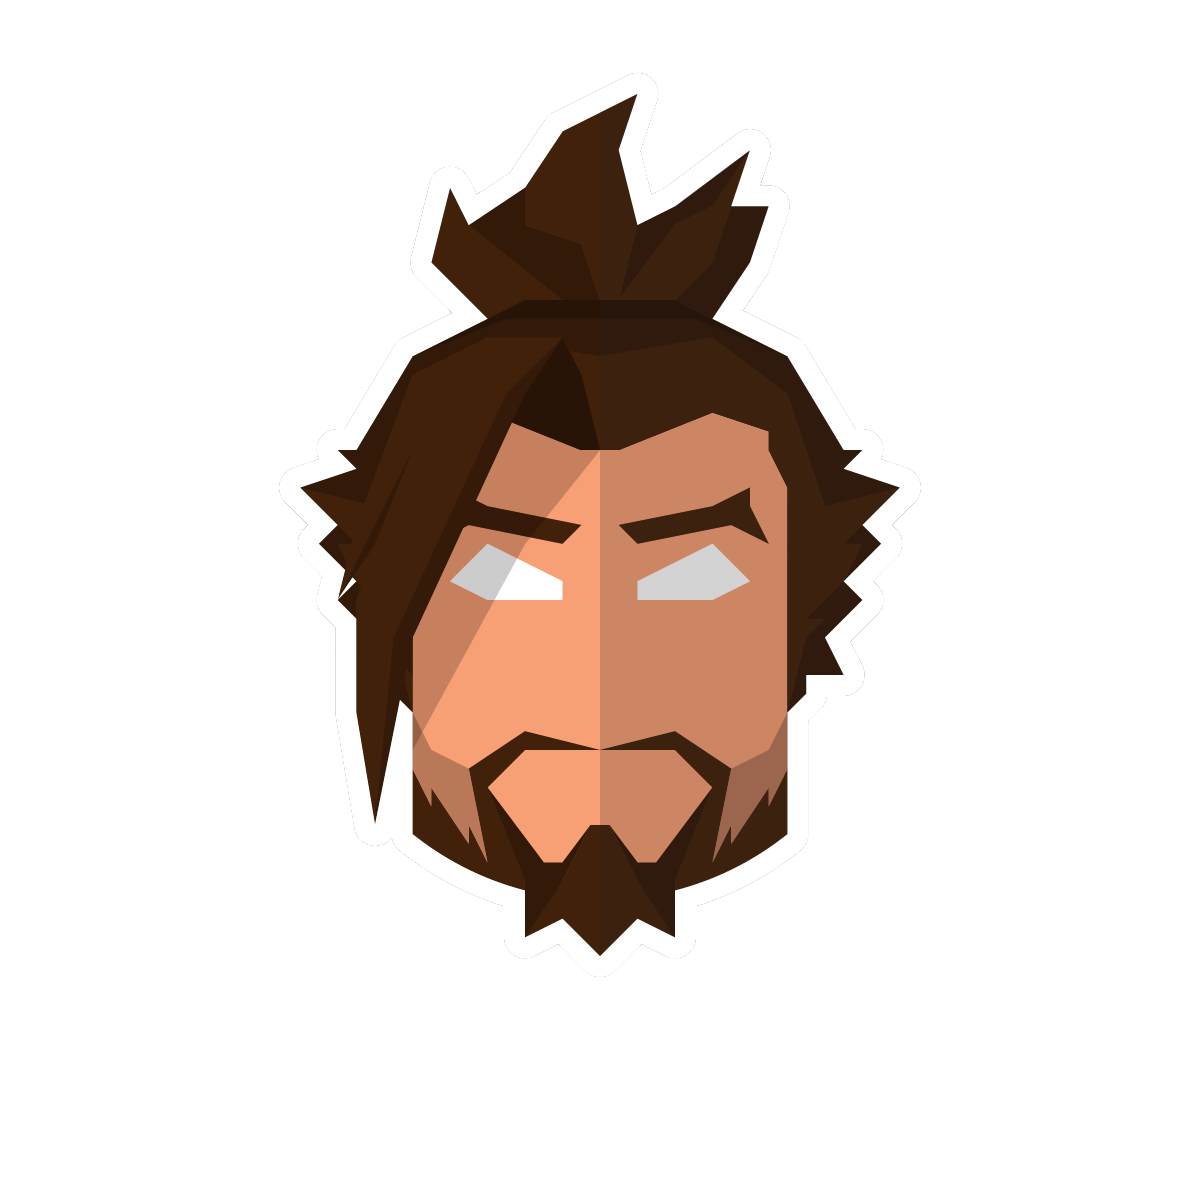 The Heroes Of Overwatch Sticker Pack messages sticker-3